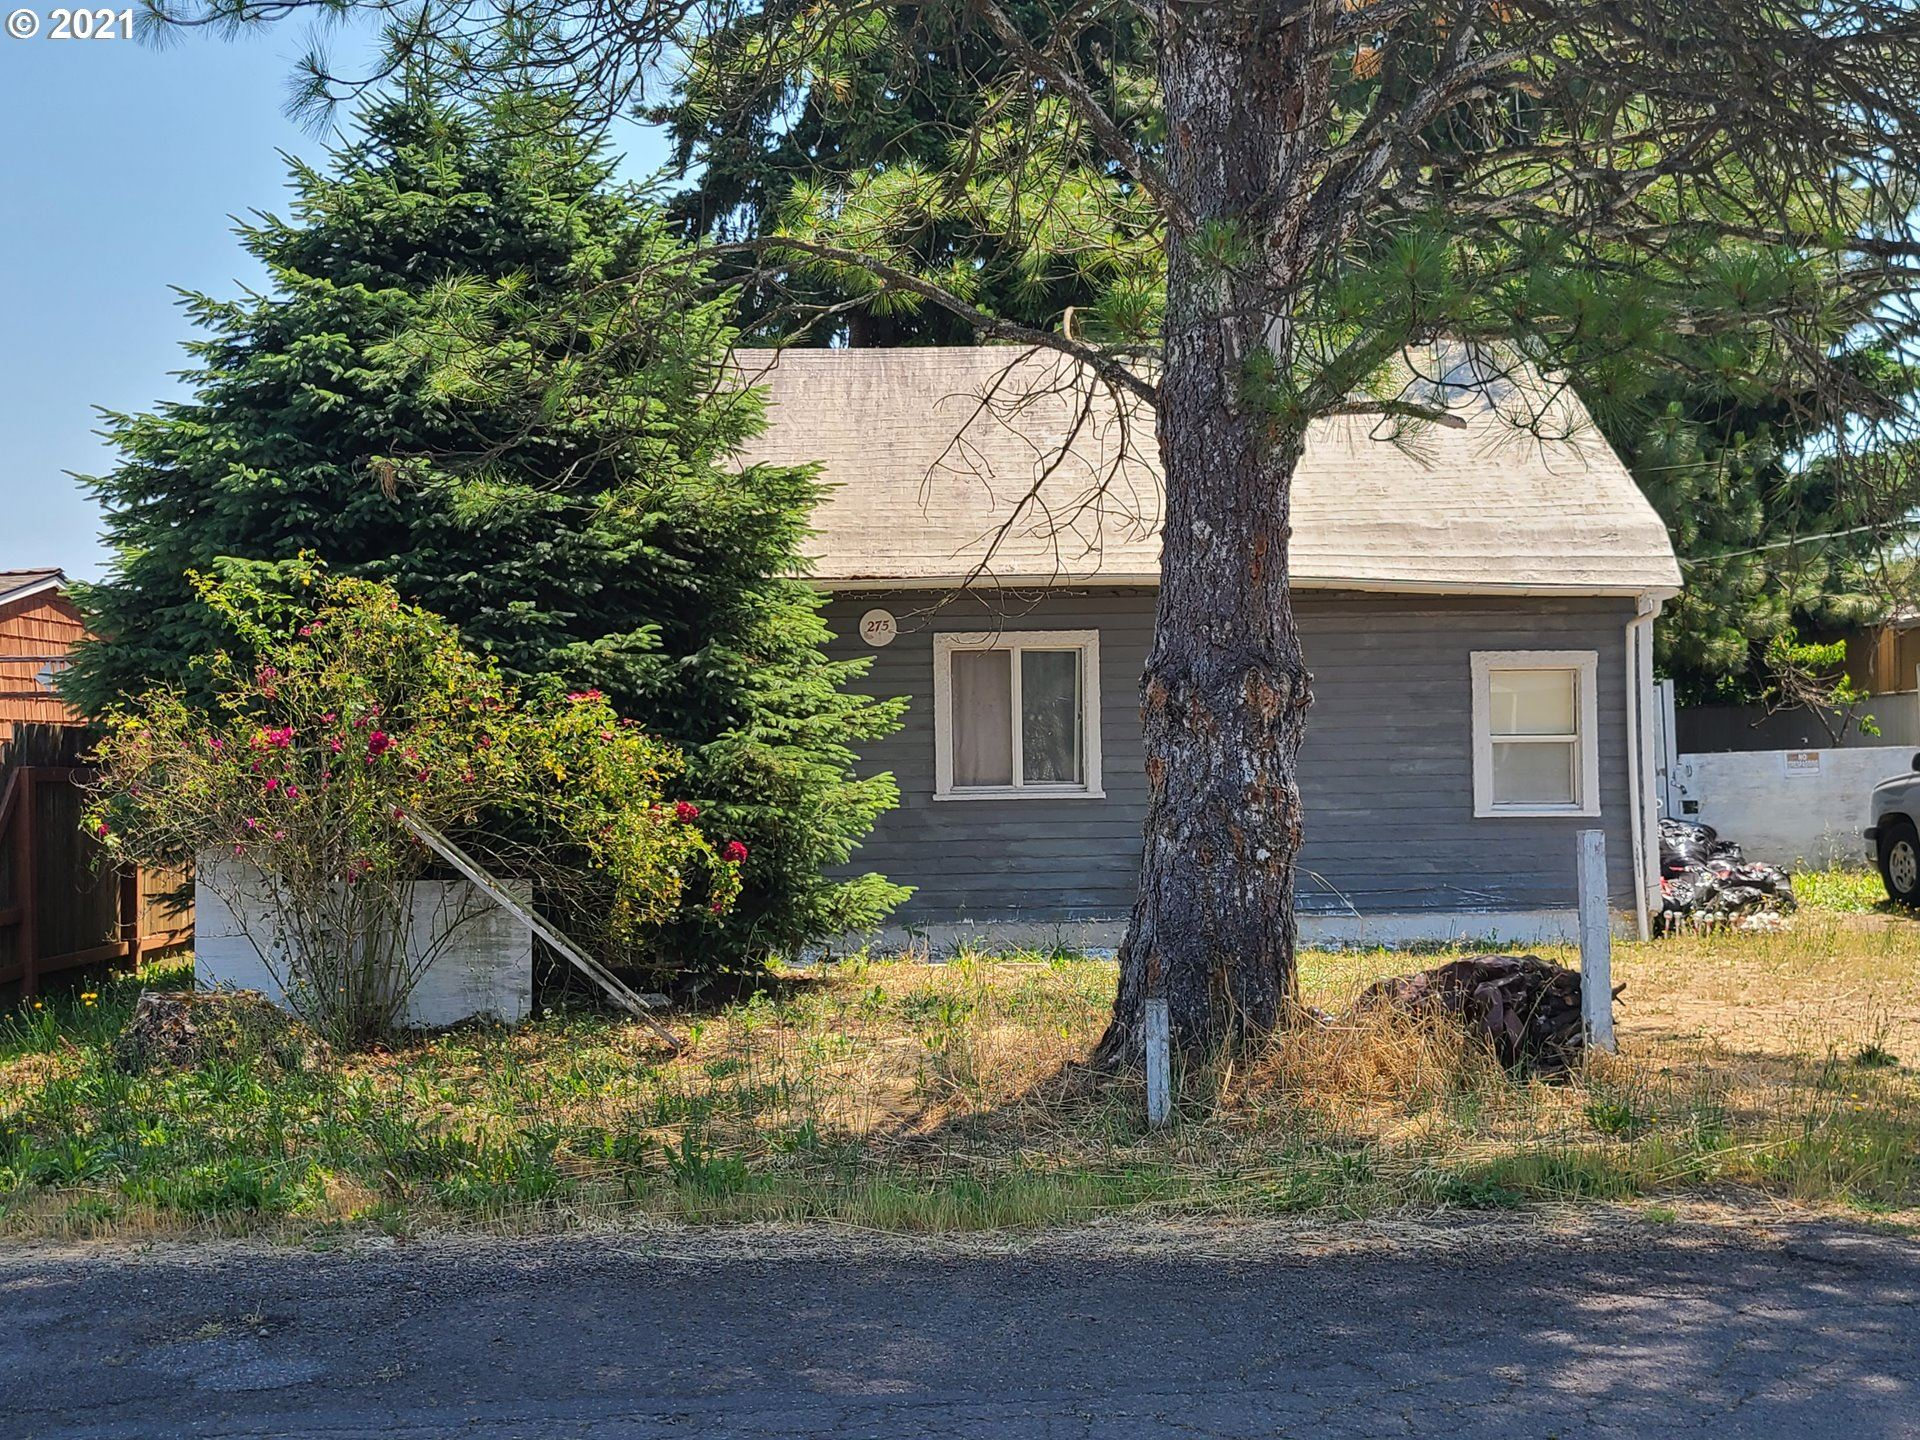 275 S 38TH ST, Springfield, OR 97478 - MLS#: 21504559